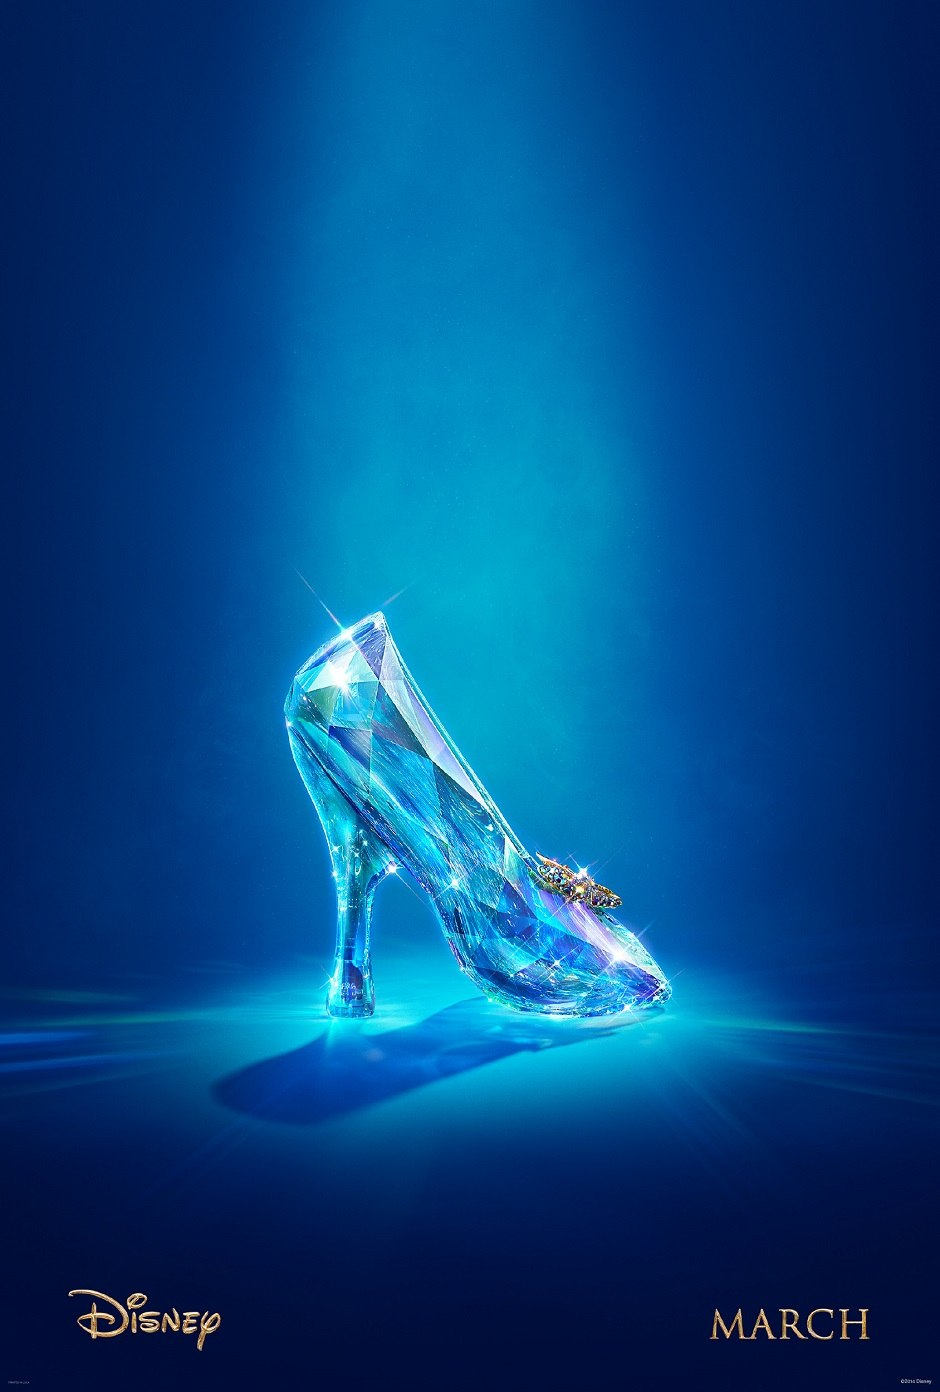 Disney Releases Teaser Trailer for Live-Action 'Cinderella